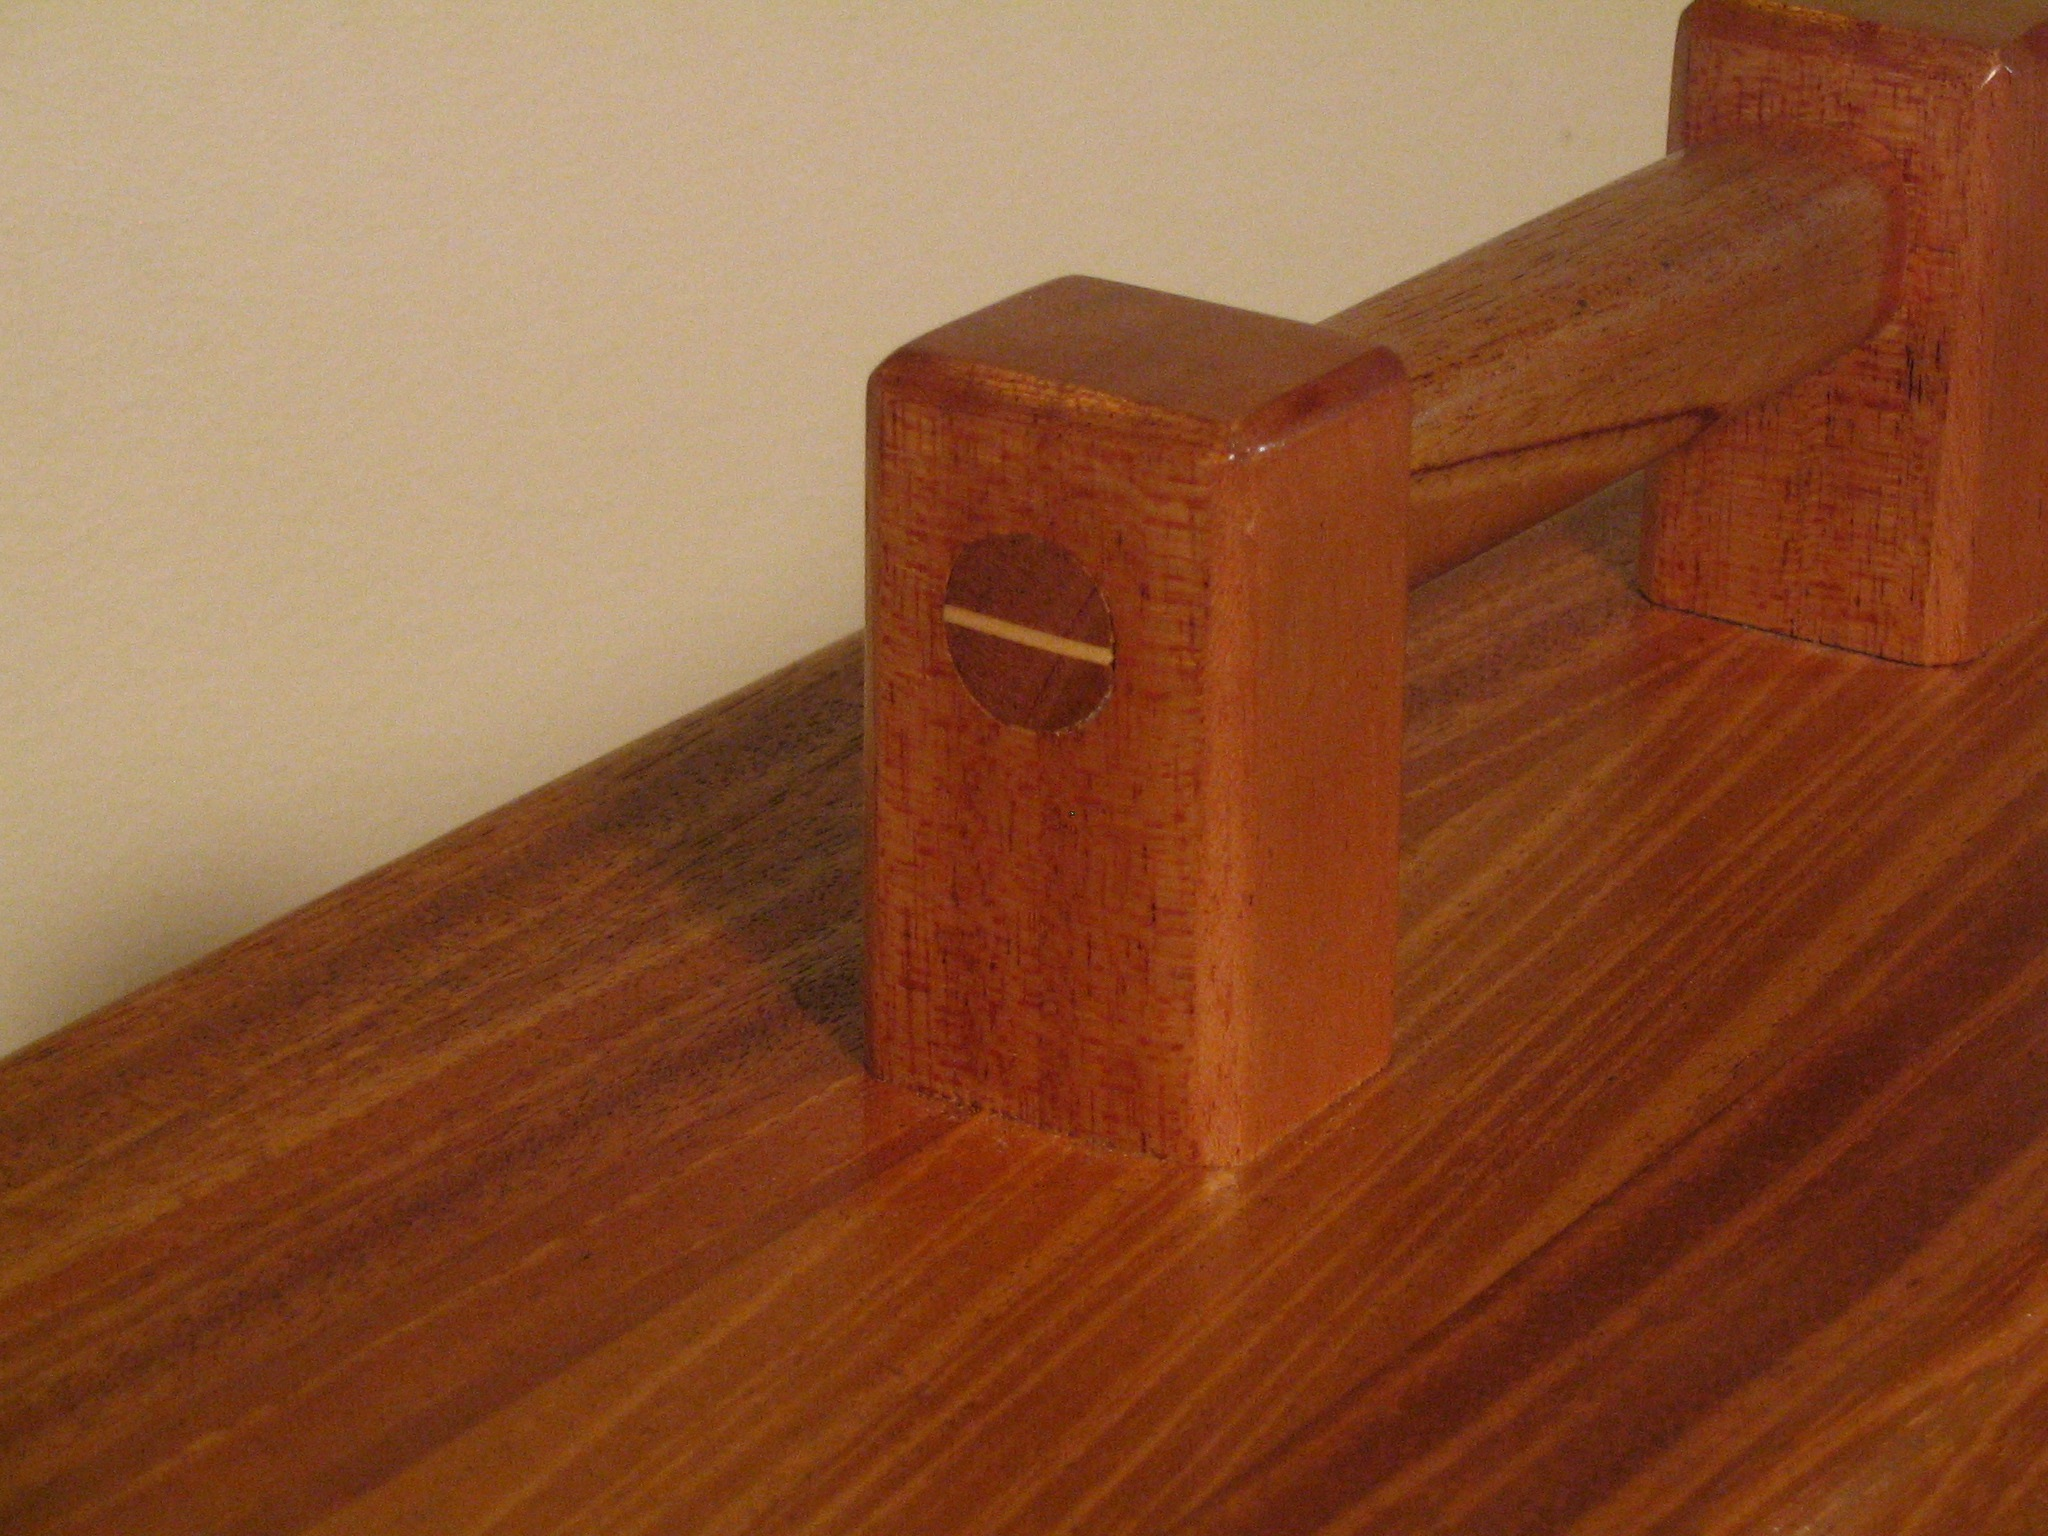 wooden-box-handle